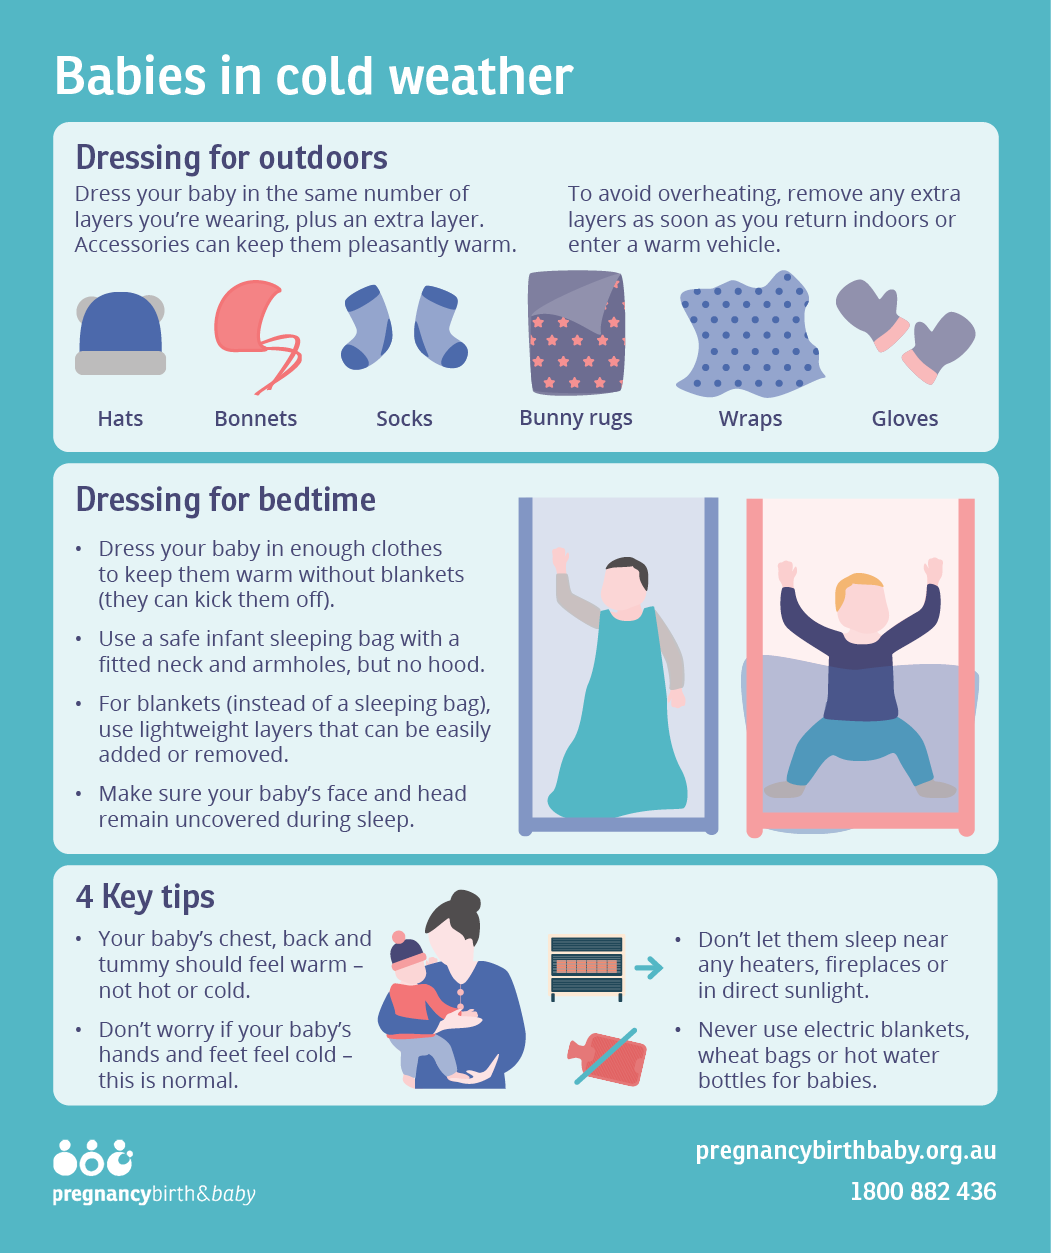 Guide to dressing your baby in cold weather - infographic